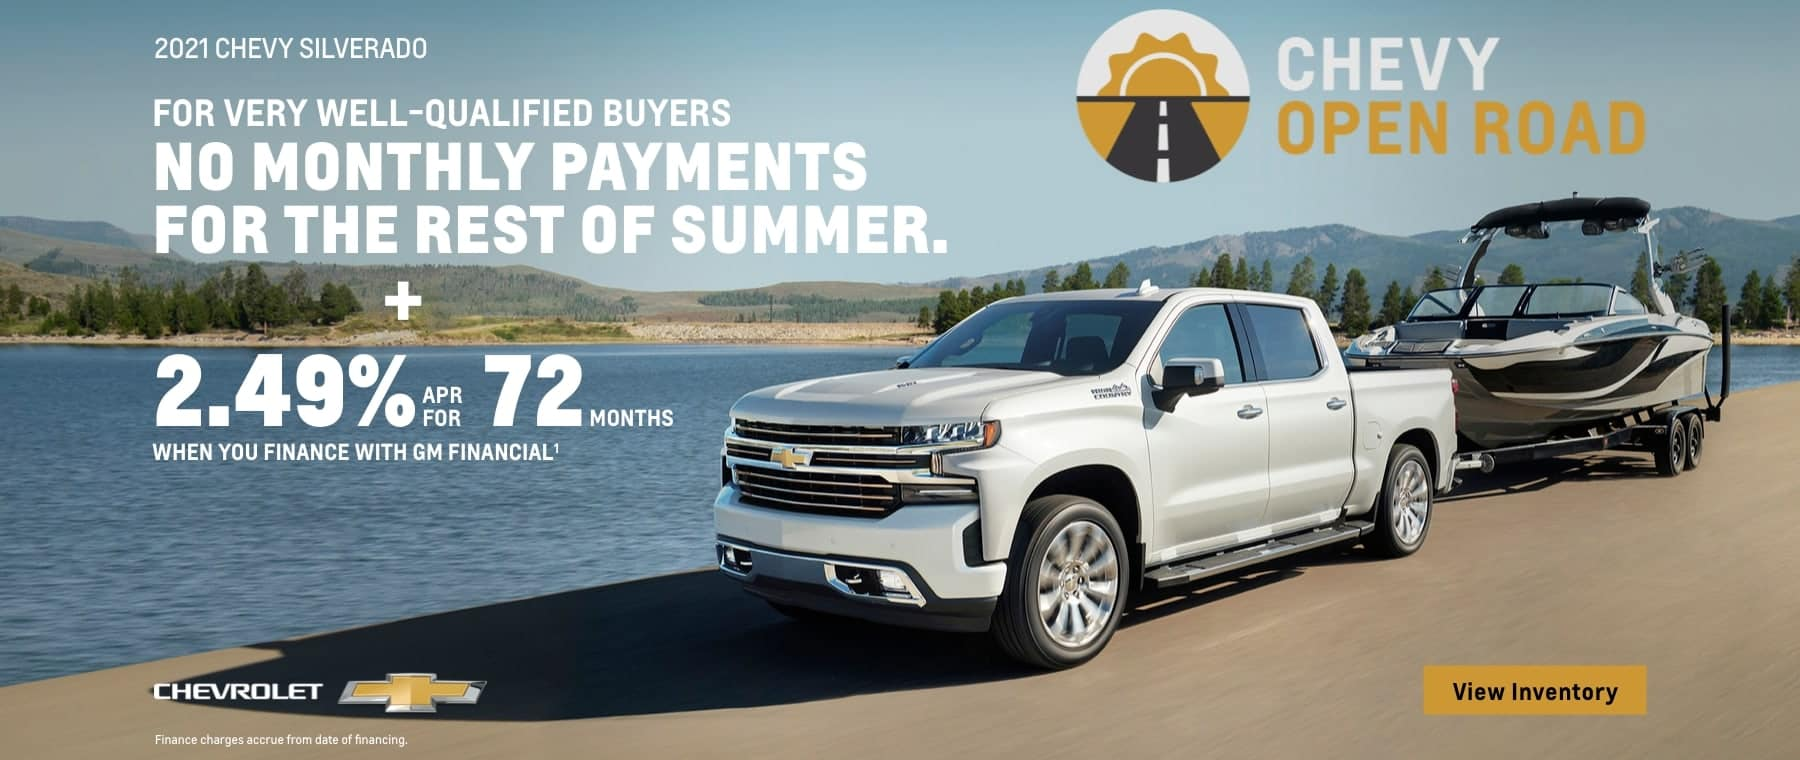 2021 Chevy Silverado 1500. No monthly payments for the rest of summer for vey well-qualified buyers. Plus, 2.49% APR for 72 months when you finance with GM Financial.